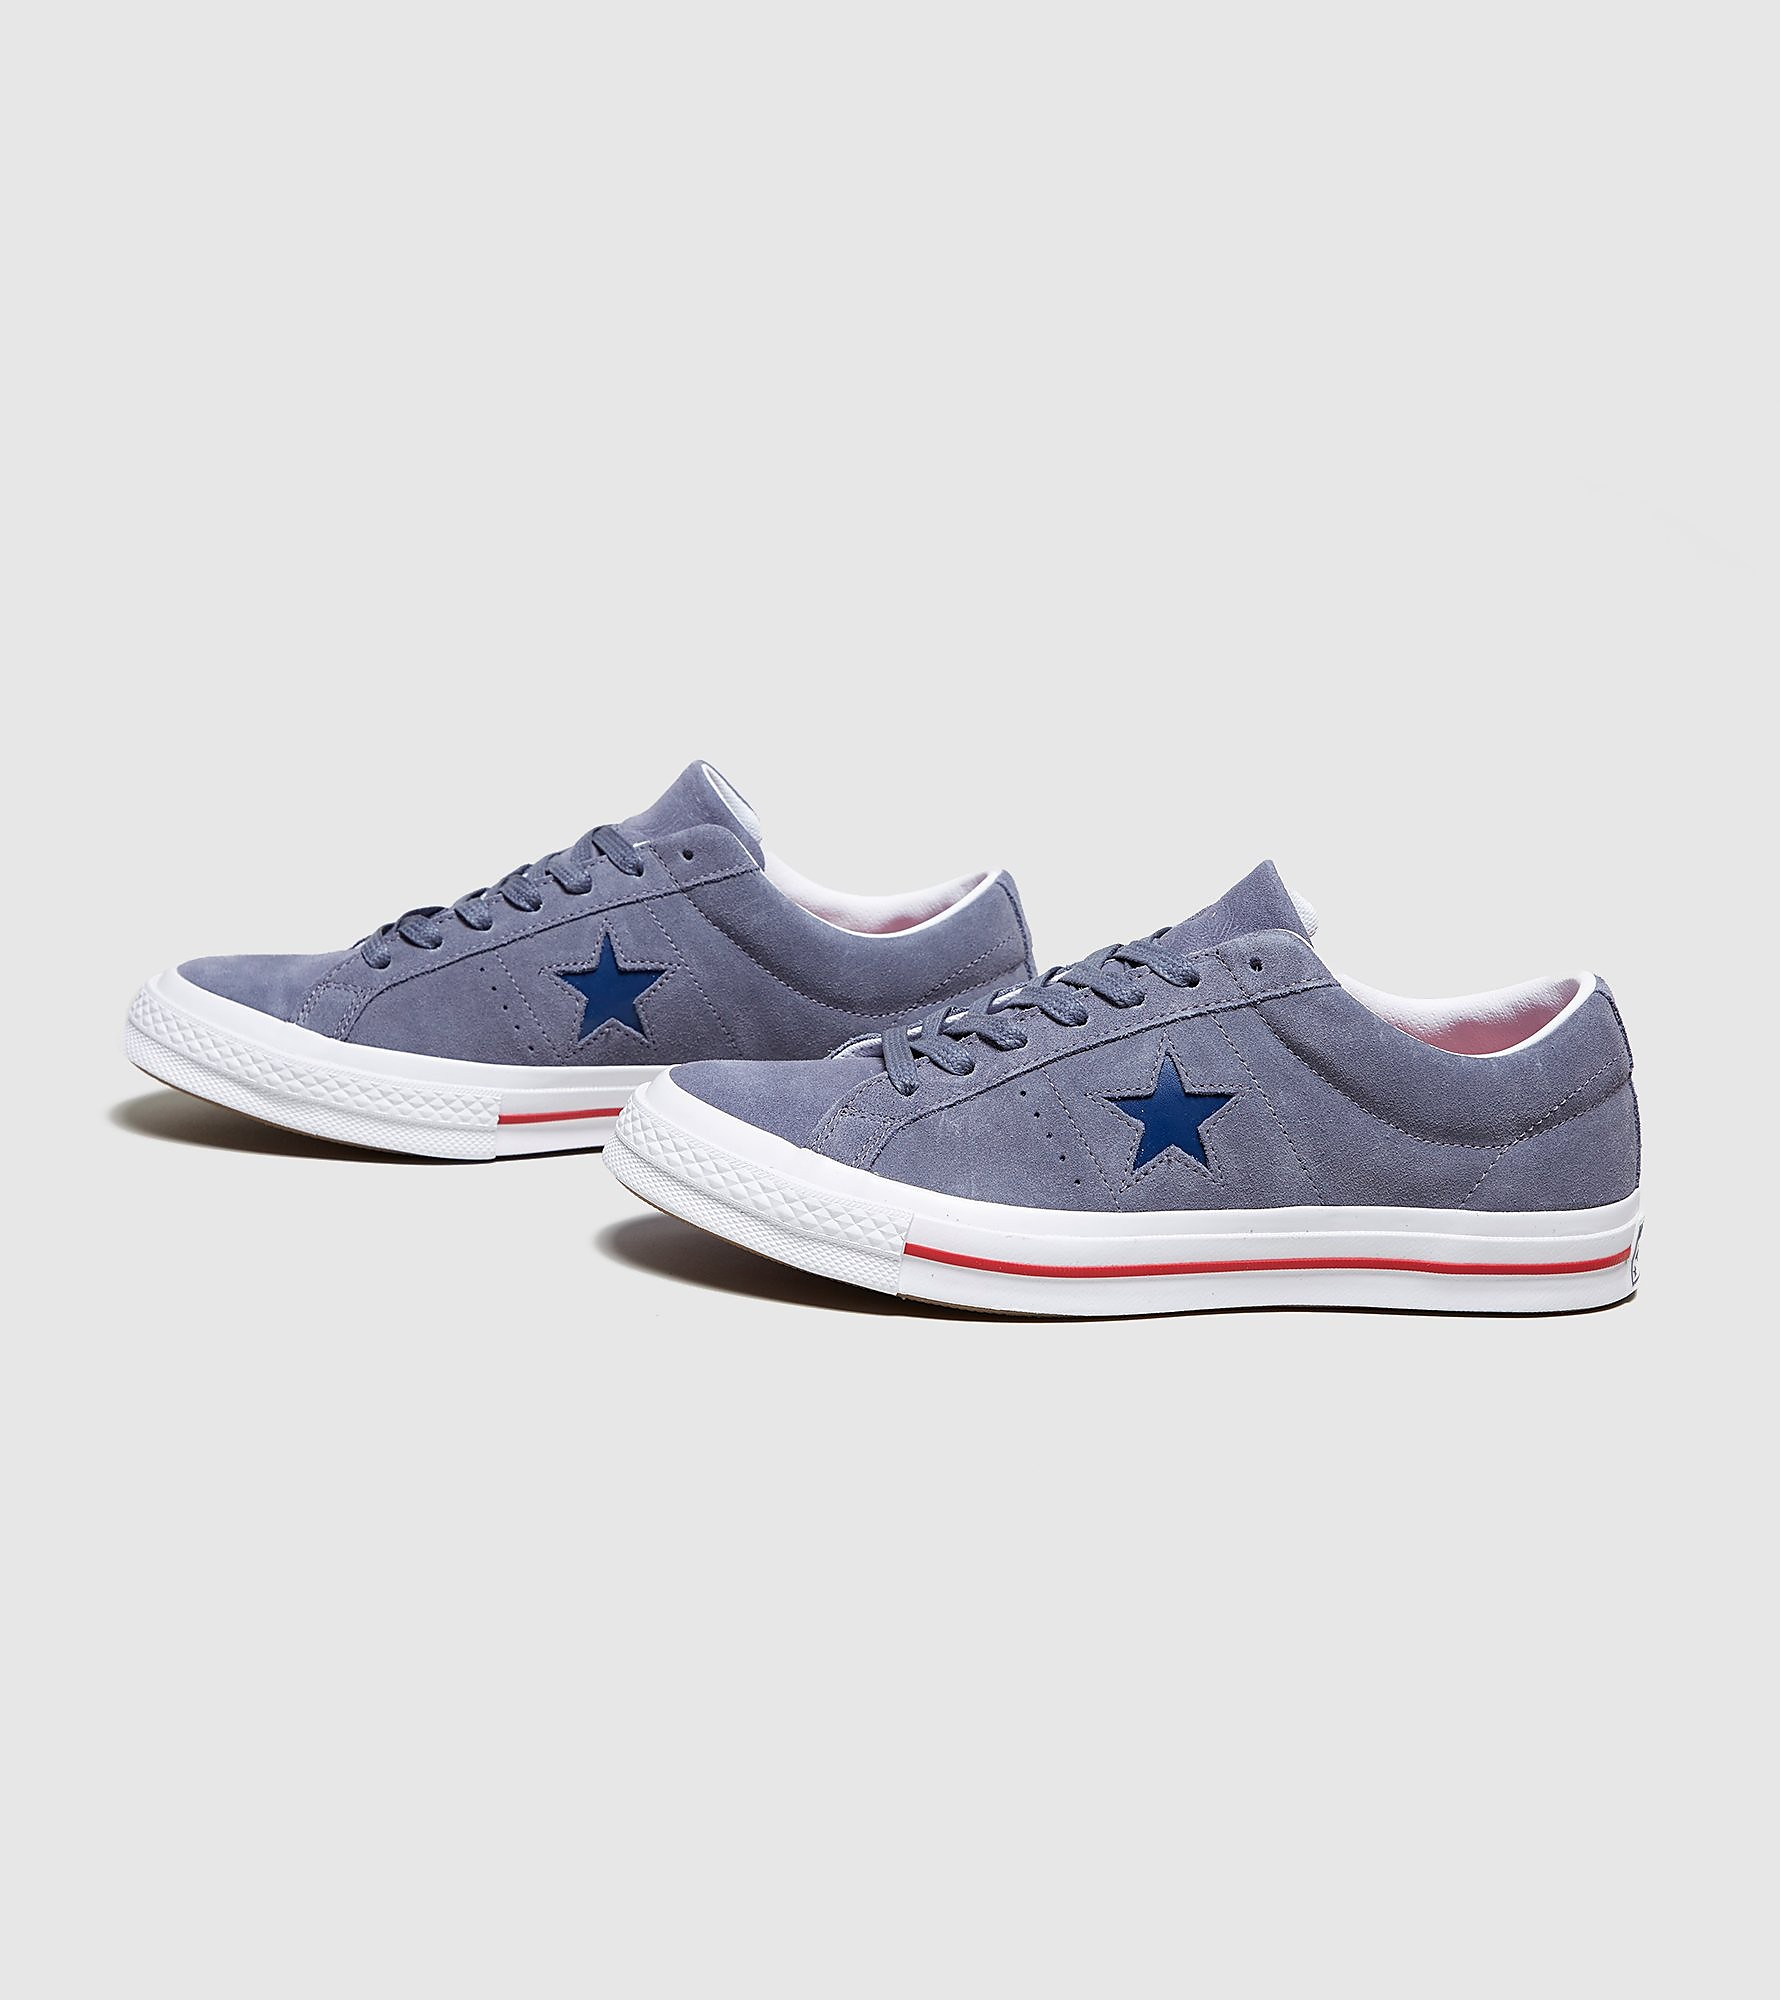 Converse One Star Military